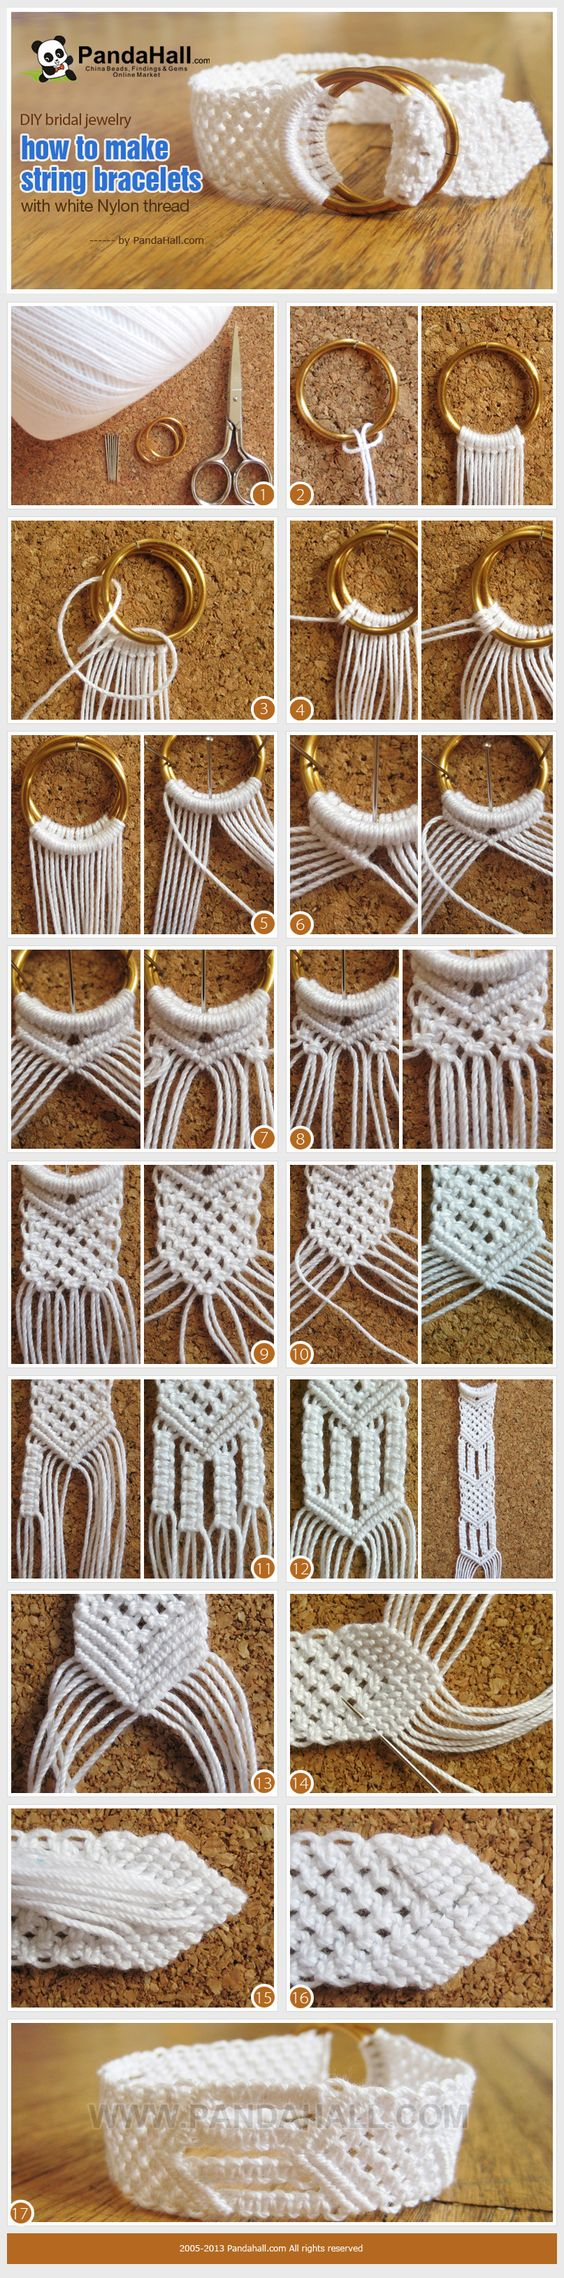 how to make string bracelets - photo #42